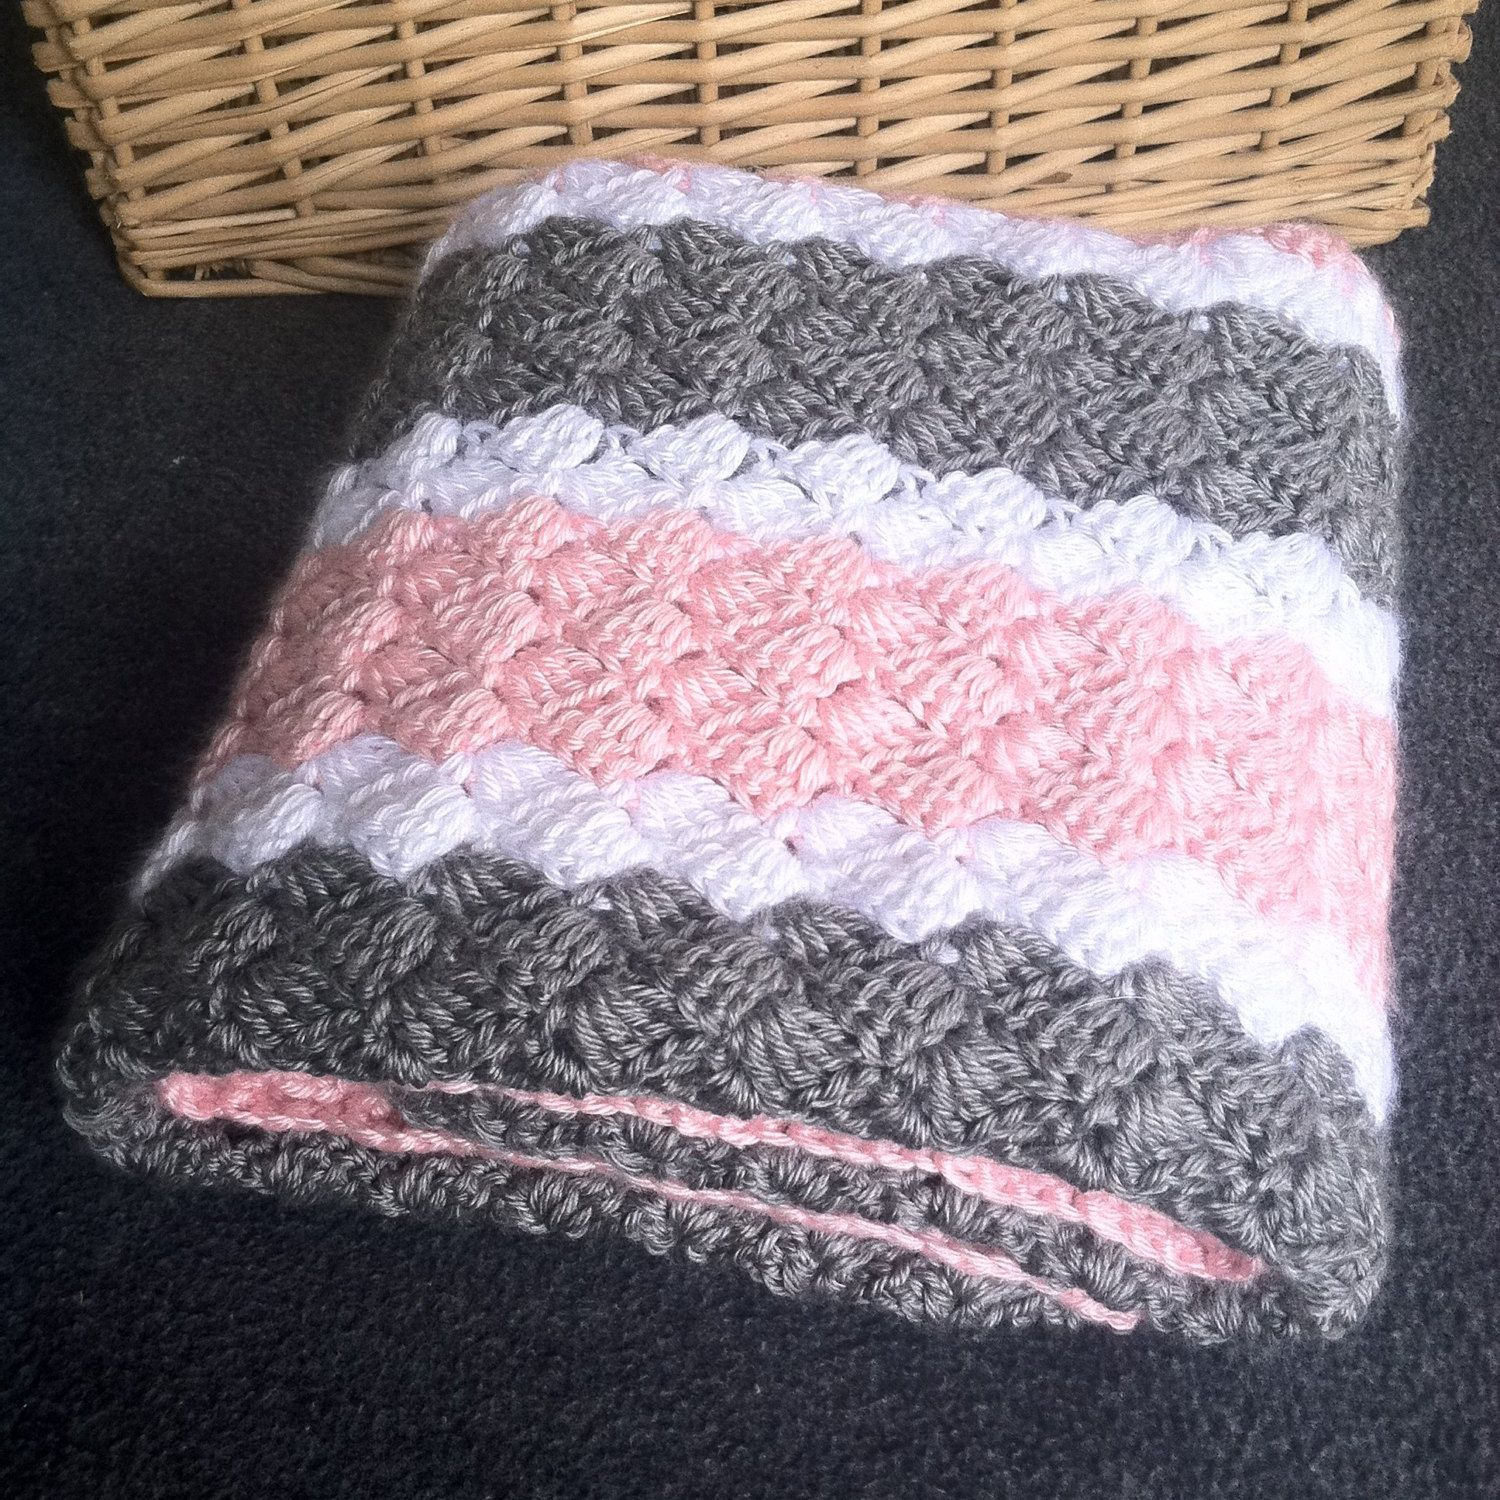 Crochet Girl Baby Blanket - Hand Made Pink, Grey and White Afghan - Pink and Grey Striped Throw by scarletngreycrochet on Etsy